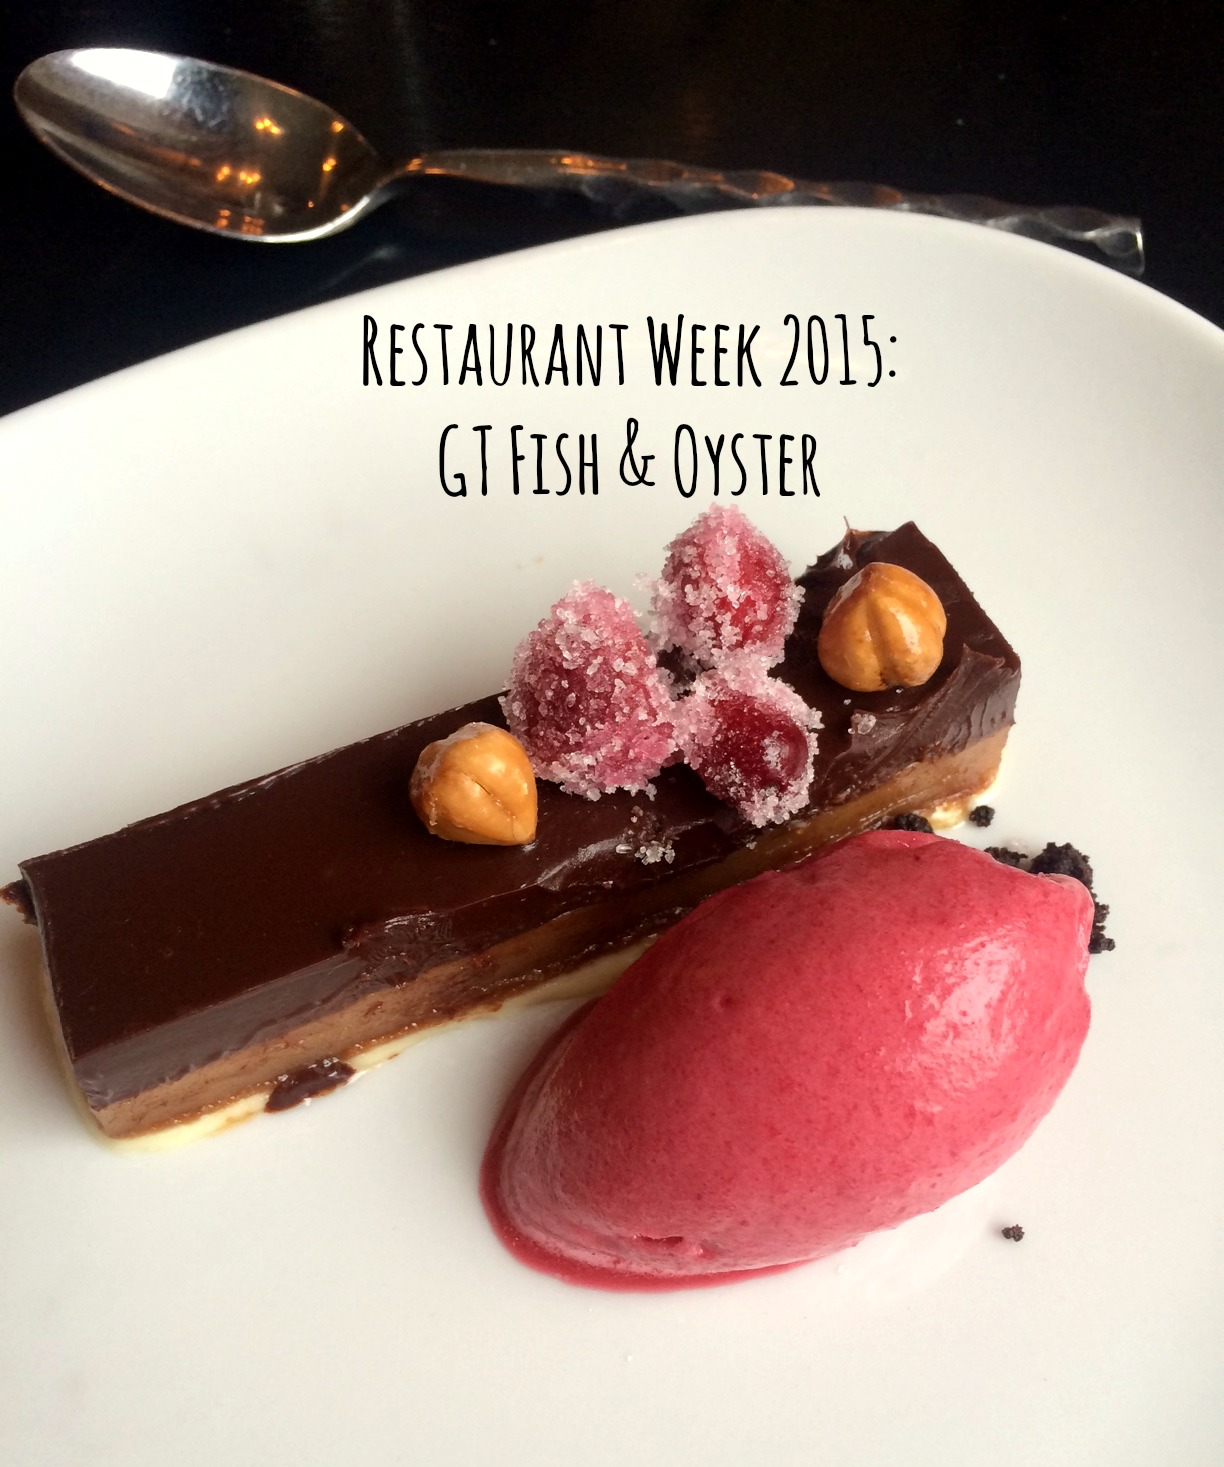 Chicago restaurant week 2015 gt fish oyster west of for Gt fish and oyster chicago